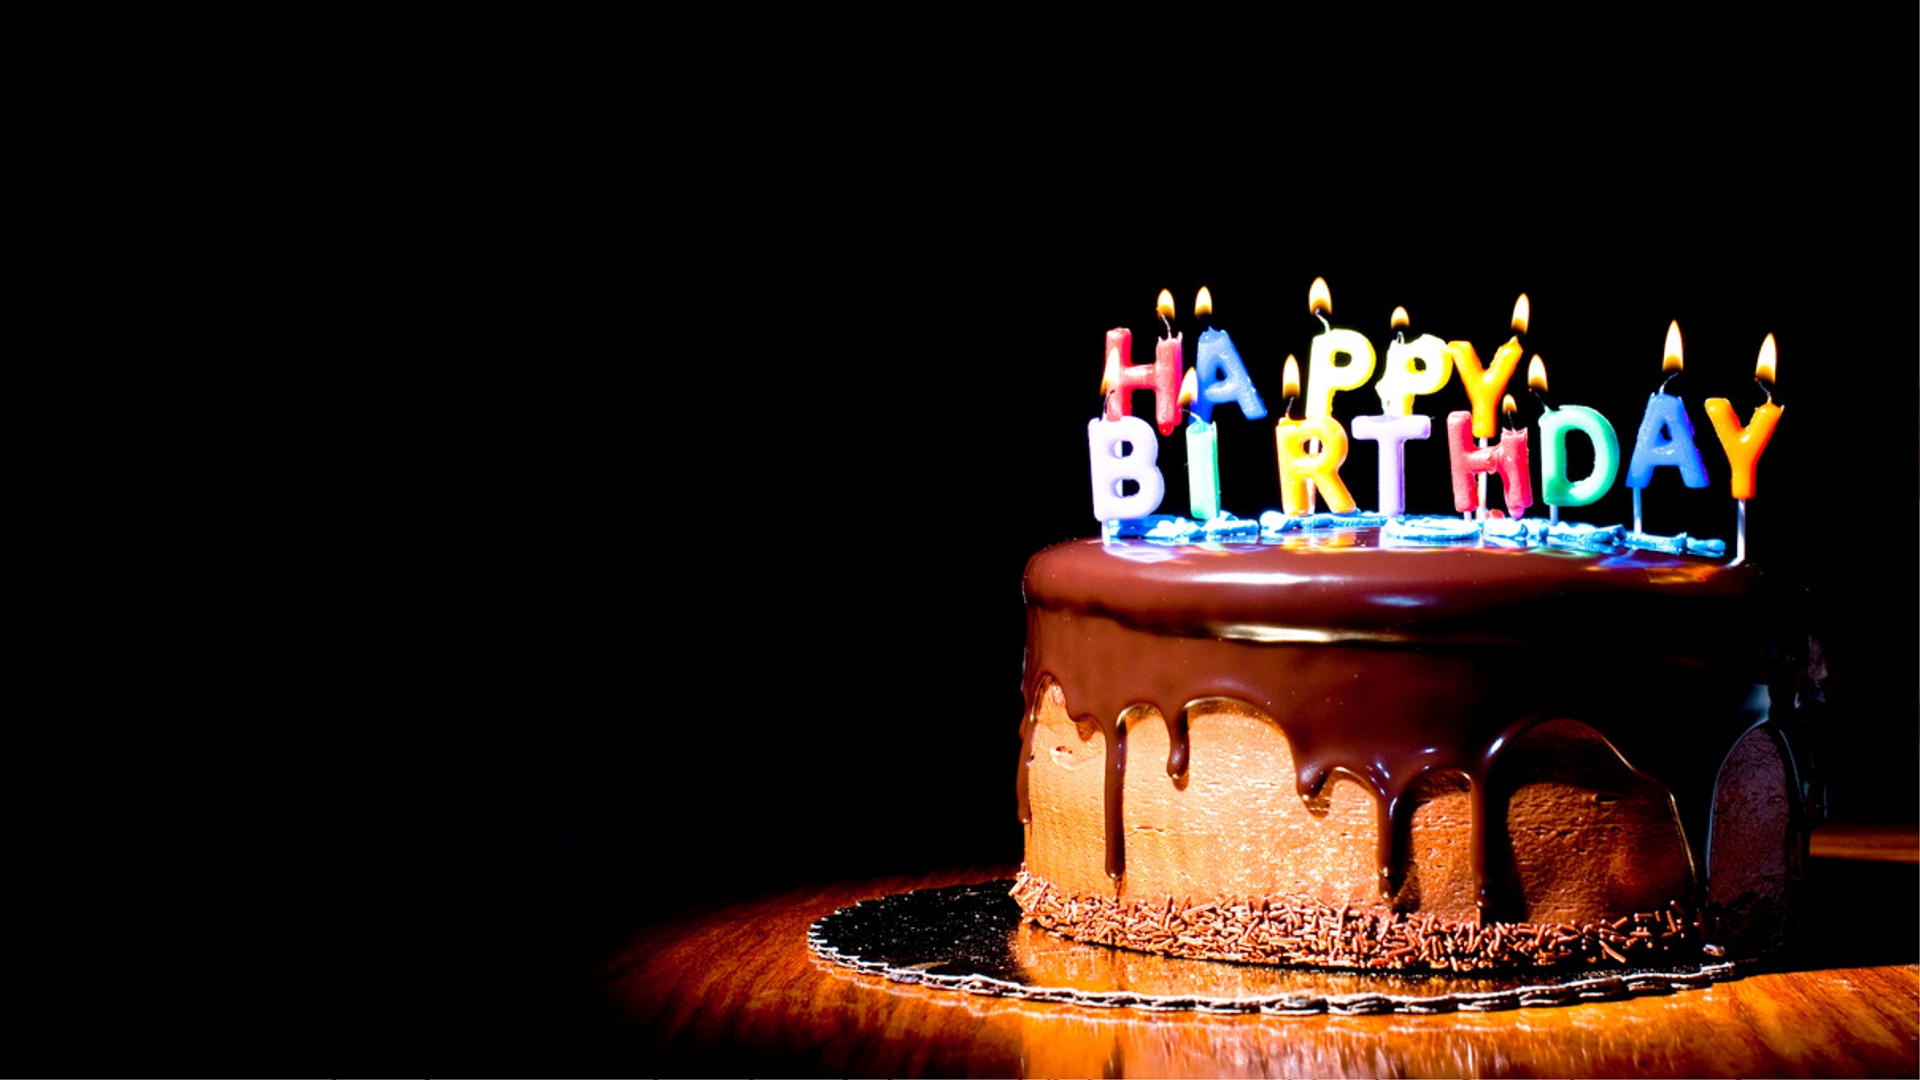 Birthday-Cake-Wallpaper-9.jpg